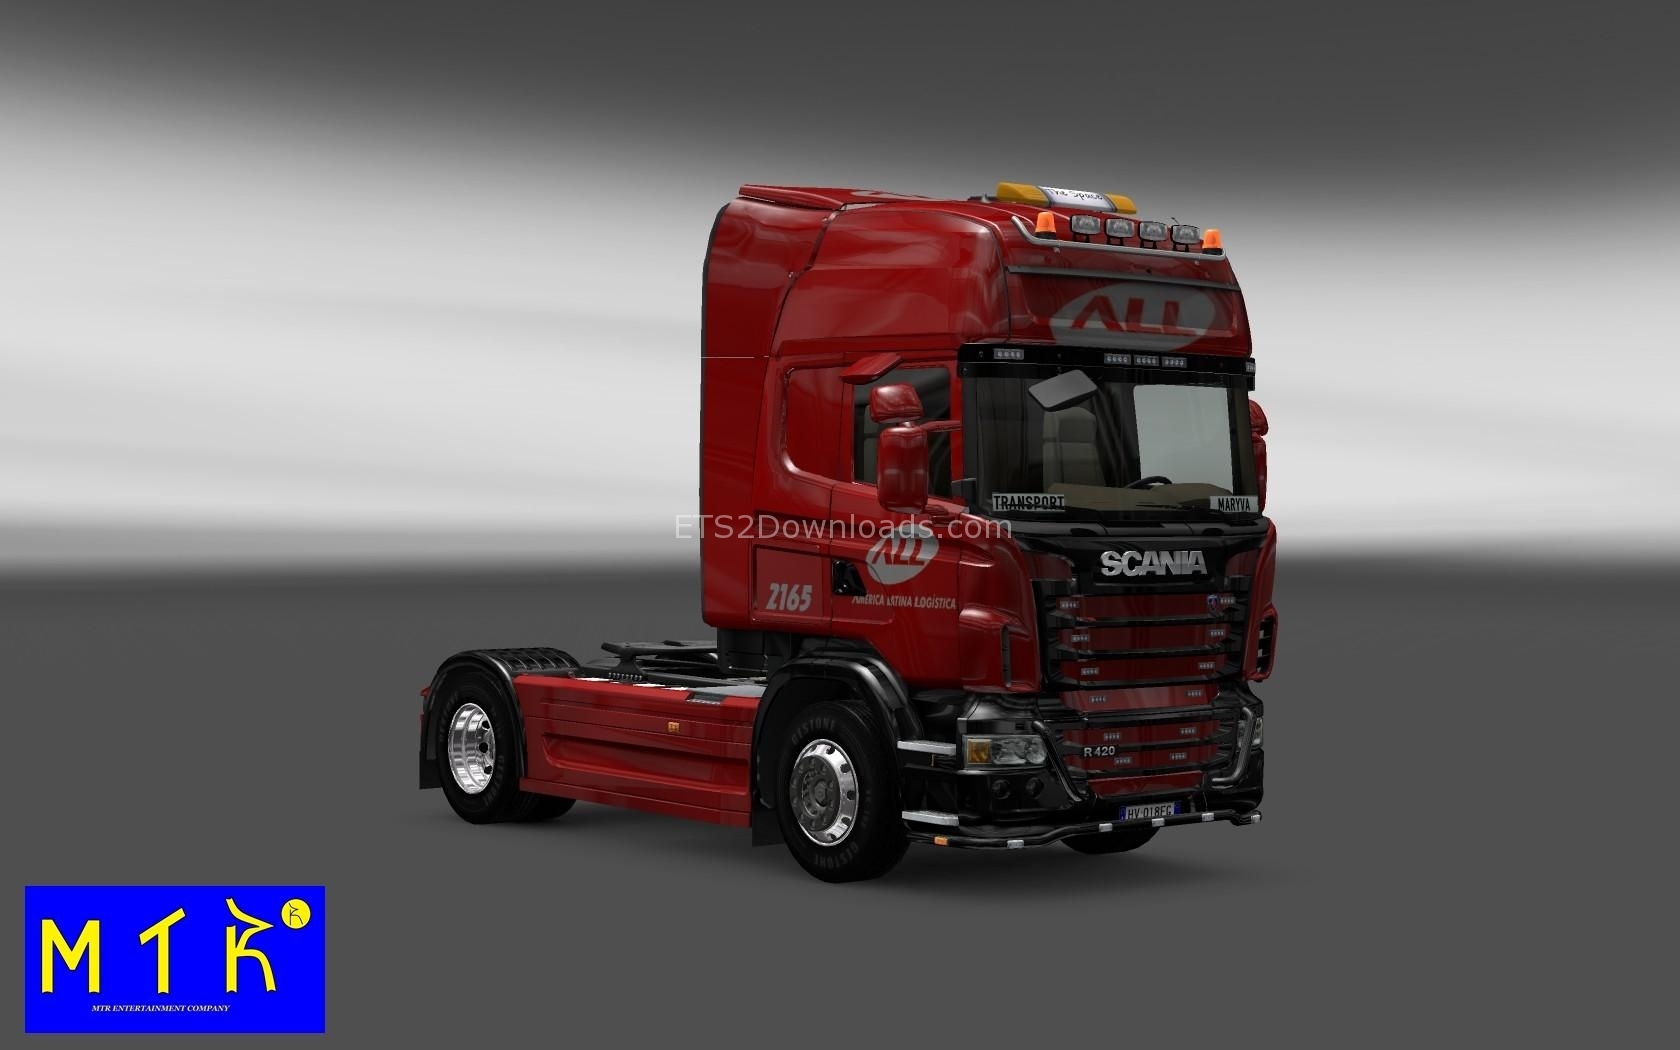 america-latina-logistica-skin-for-scania-ets2